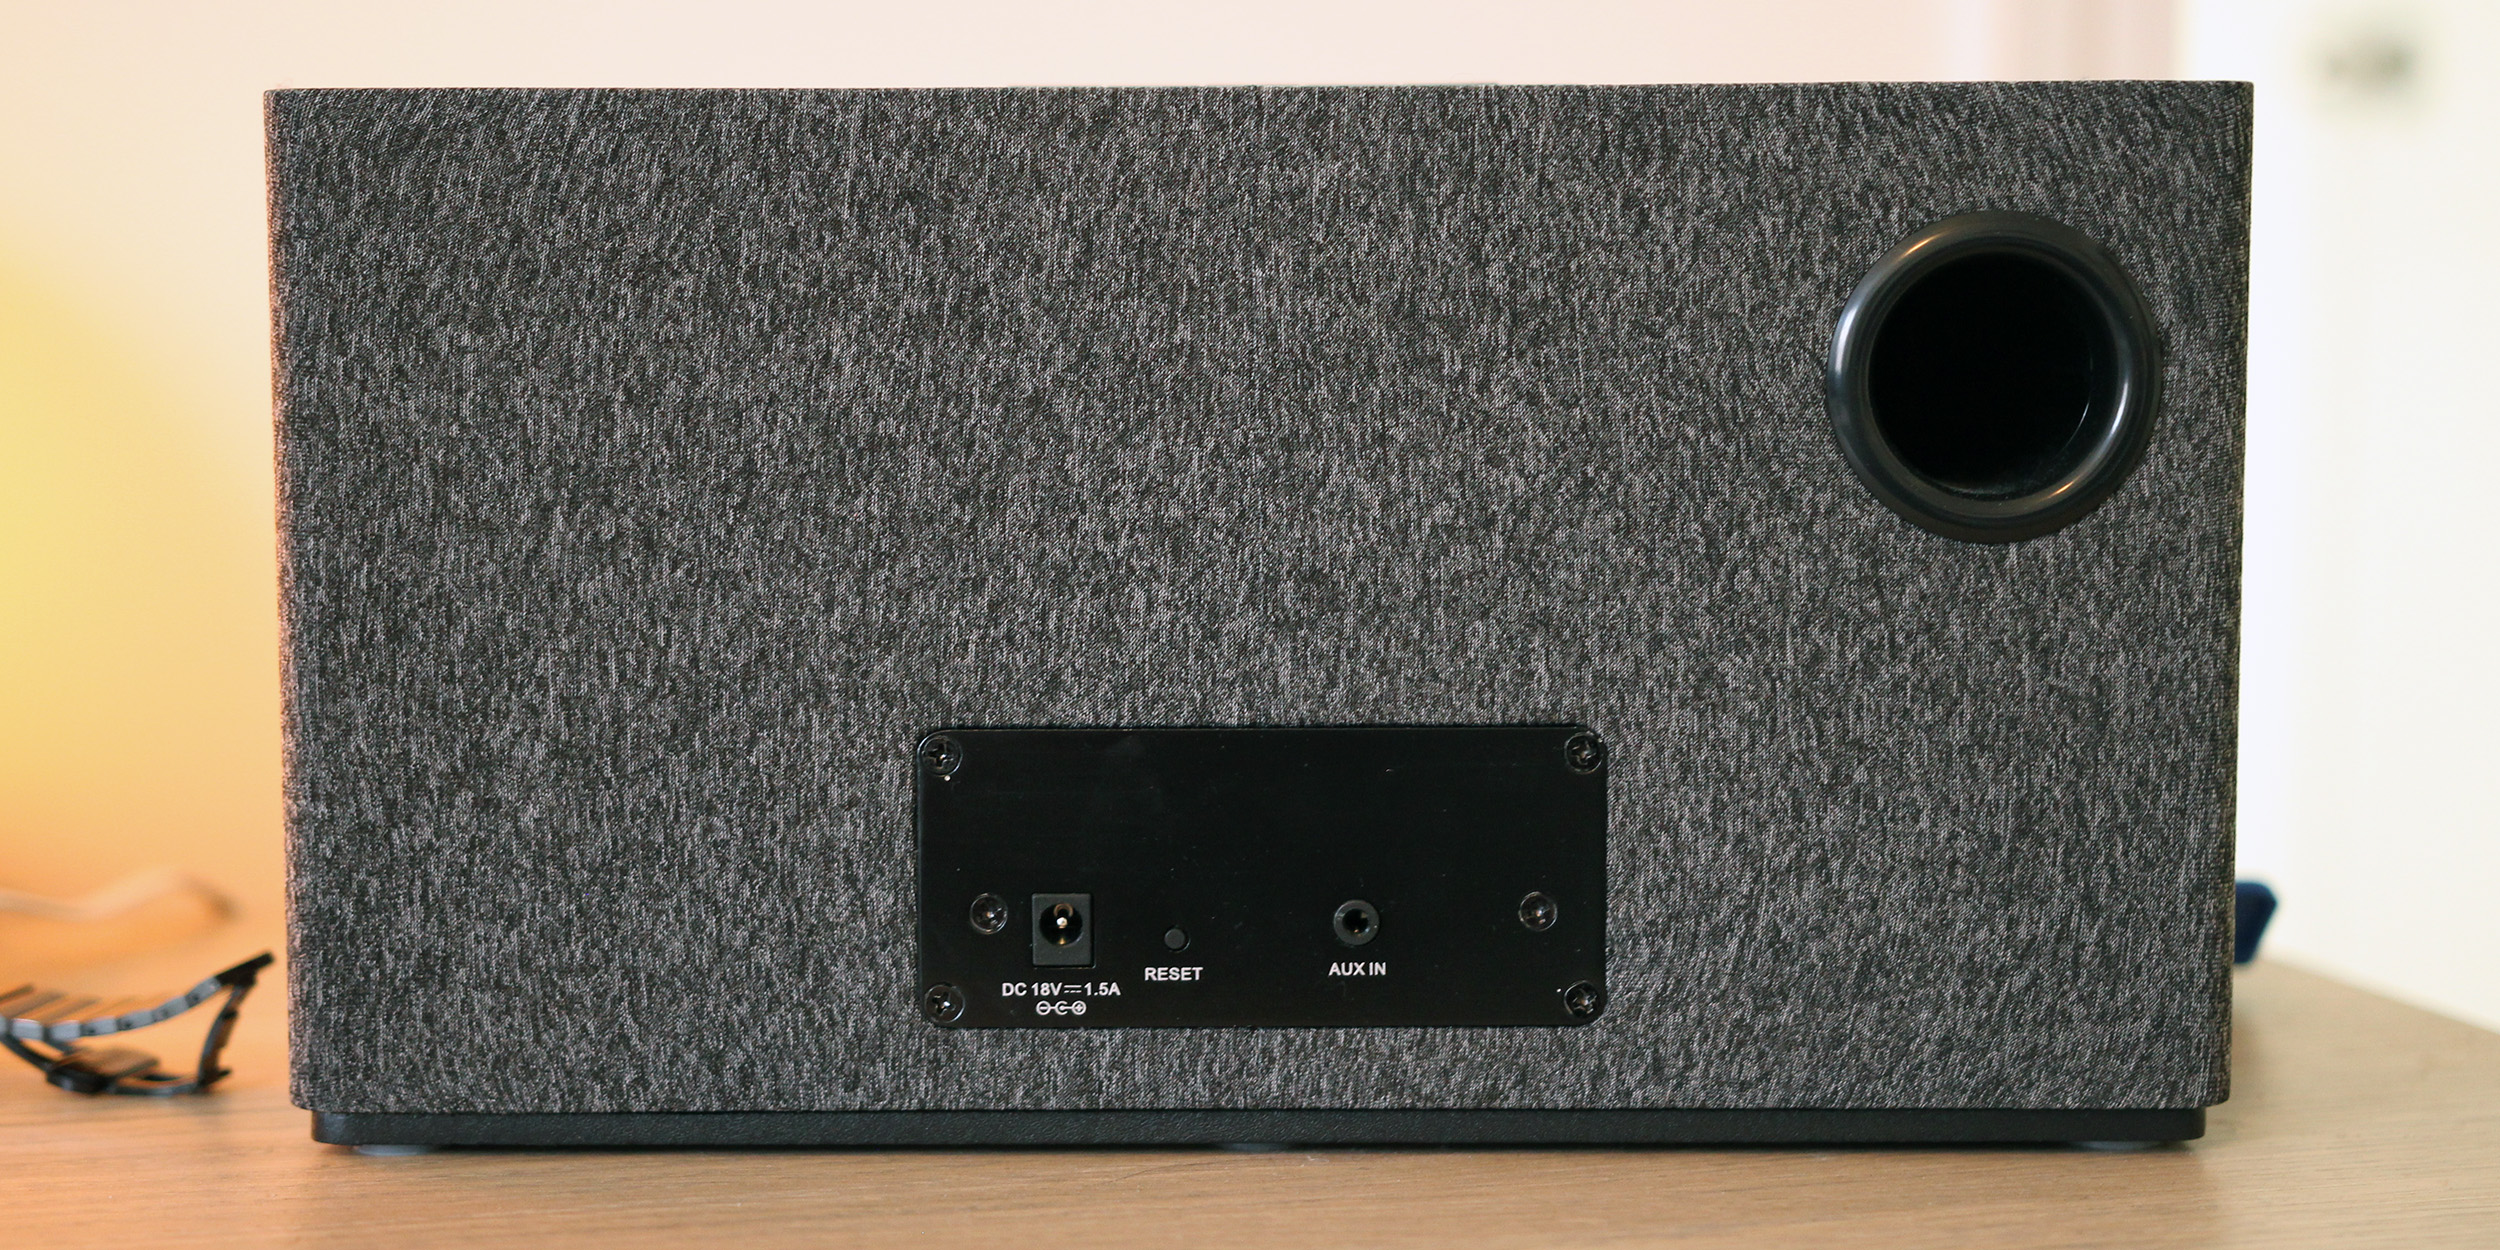 Review: SōLIS' Chromecast-enabled speakers pack excellent